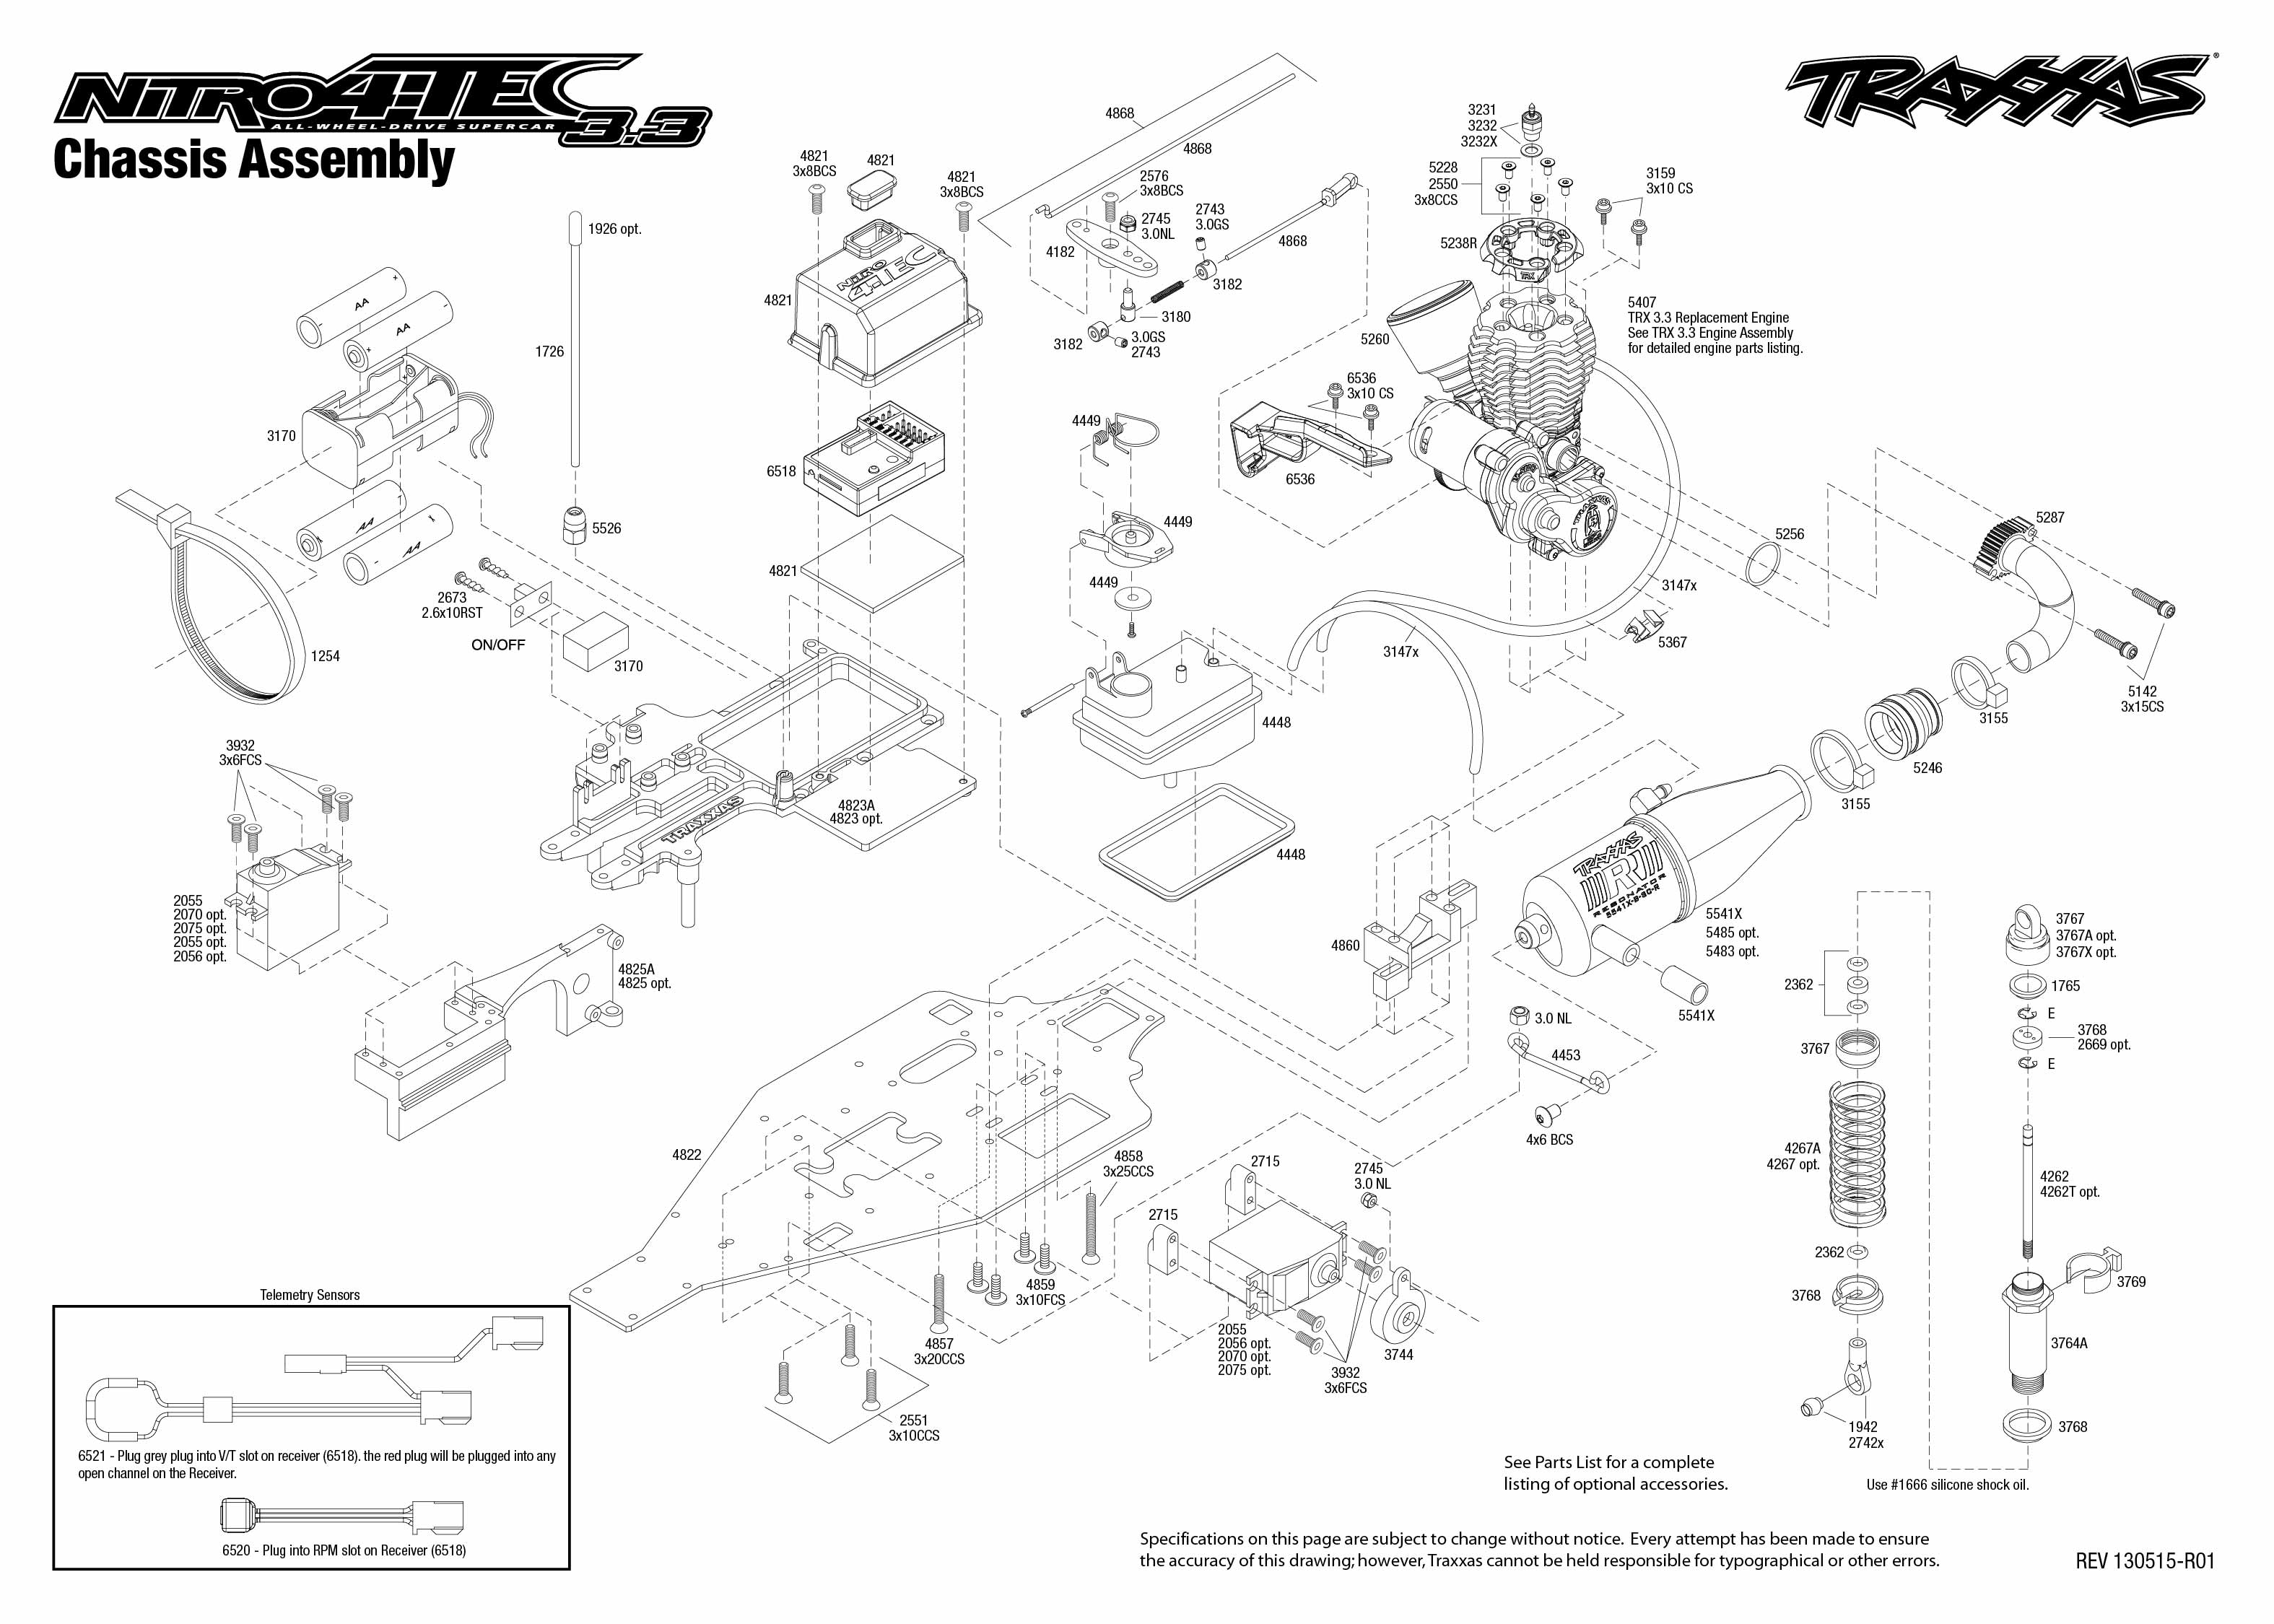 [DIAGRAM] Well Tec E116997 Wiring Diagram FULL Version HD